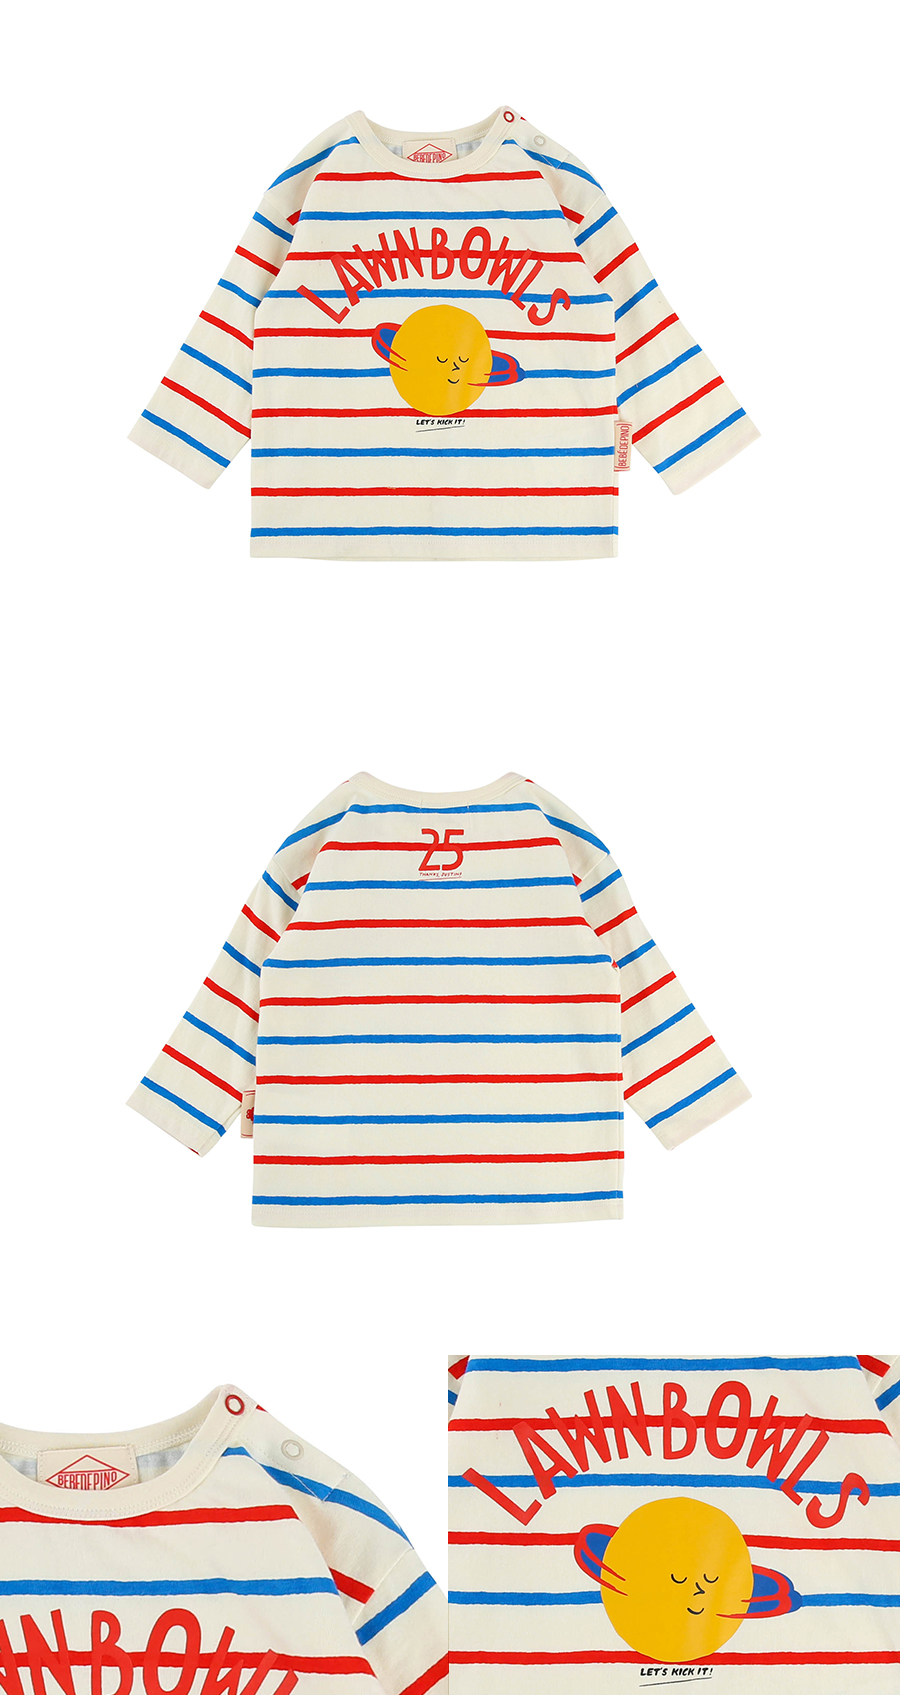 Lawn bowls baby multi stripe three quarter tee 상세 이미지